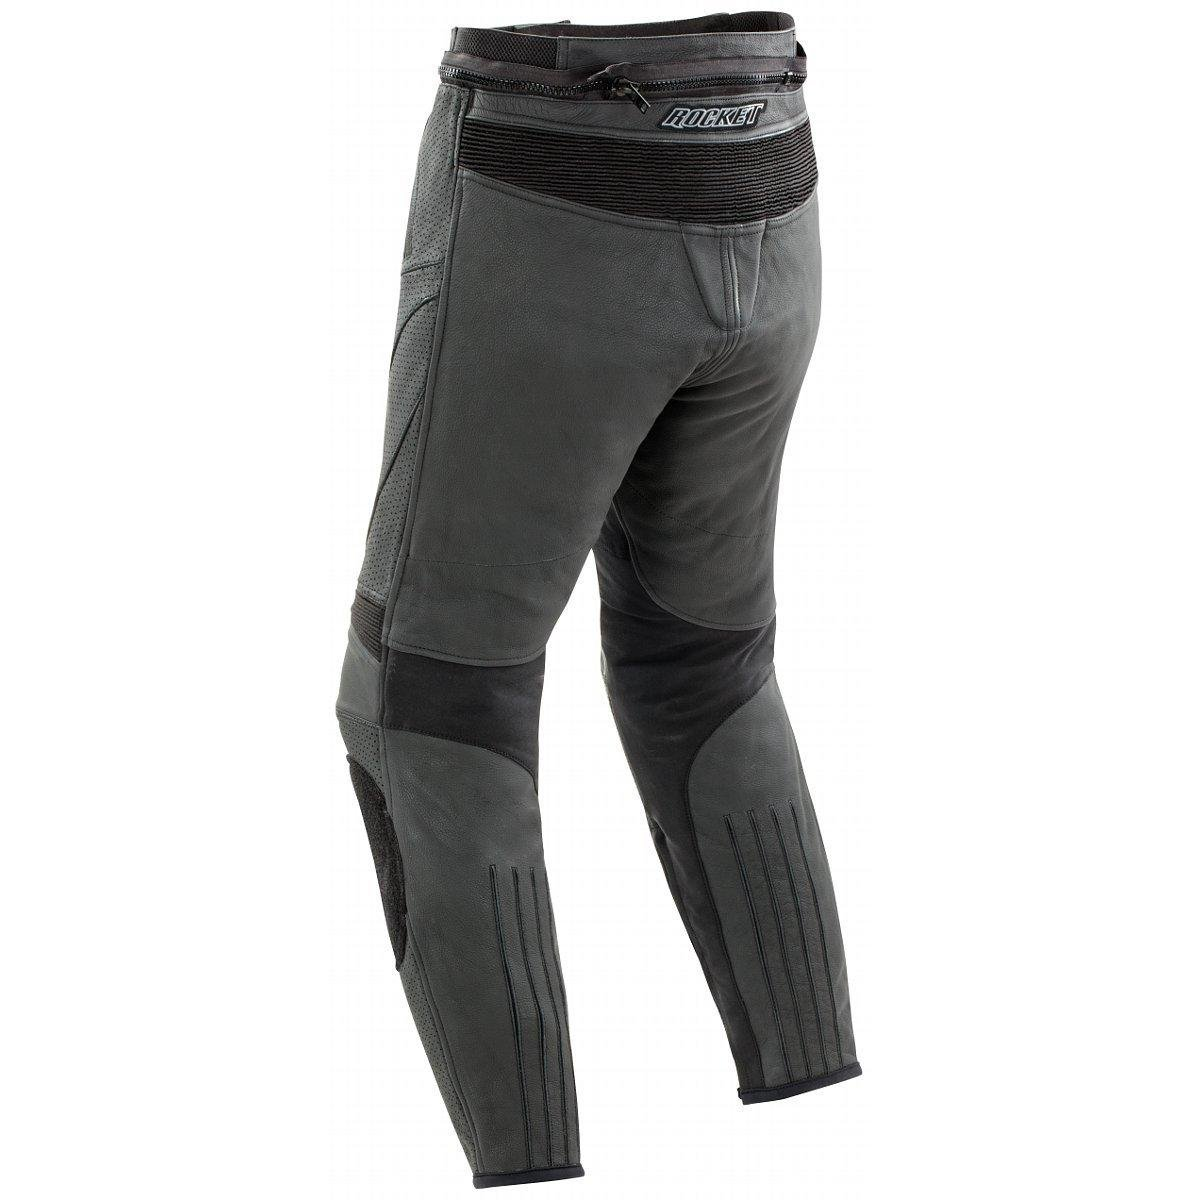 Joe Rocket Stealth Sport Mens Leather Perforated Motorcycle Pants Black, Size 34